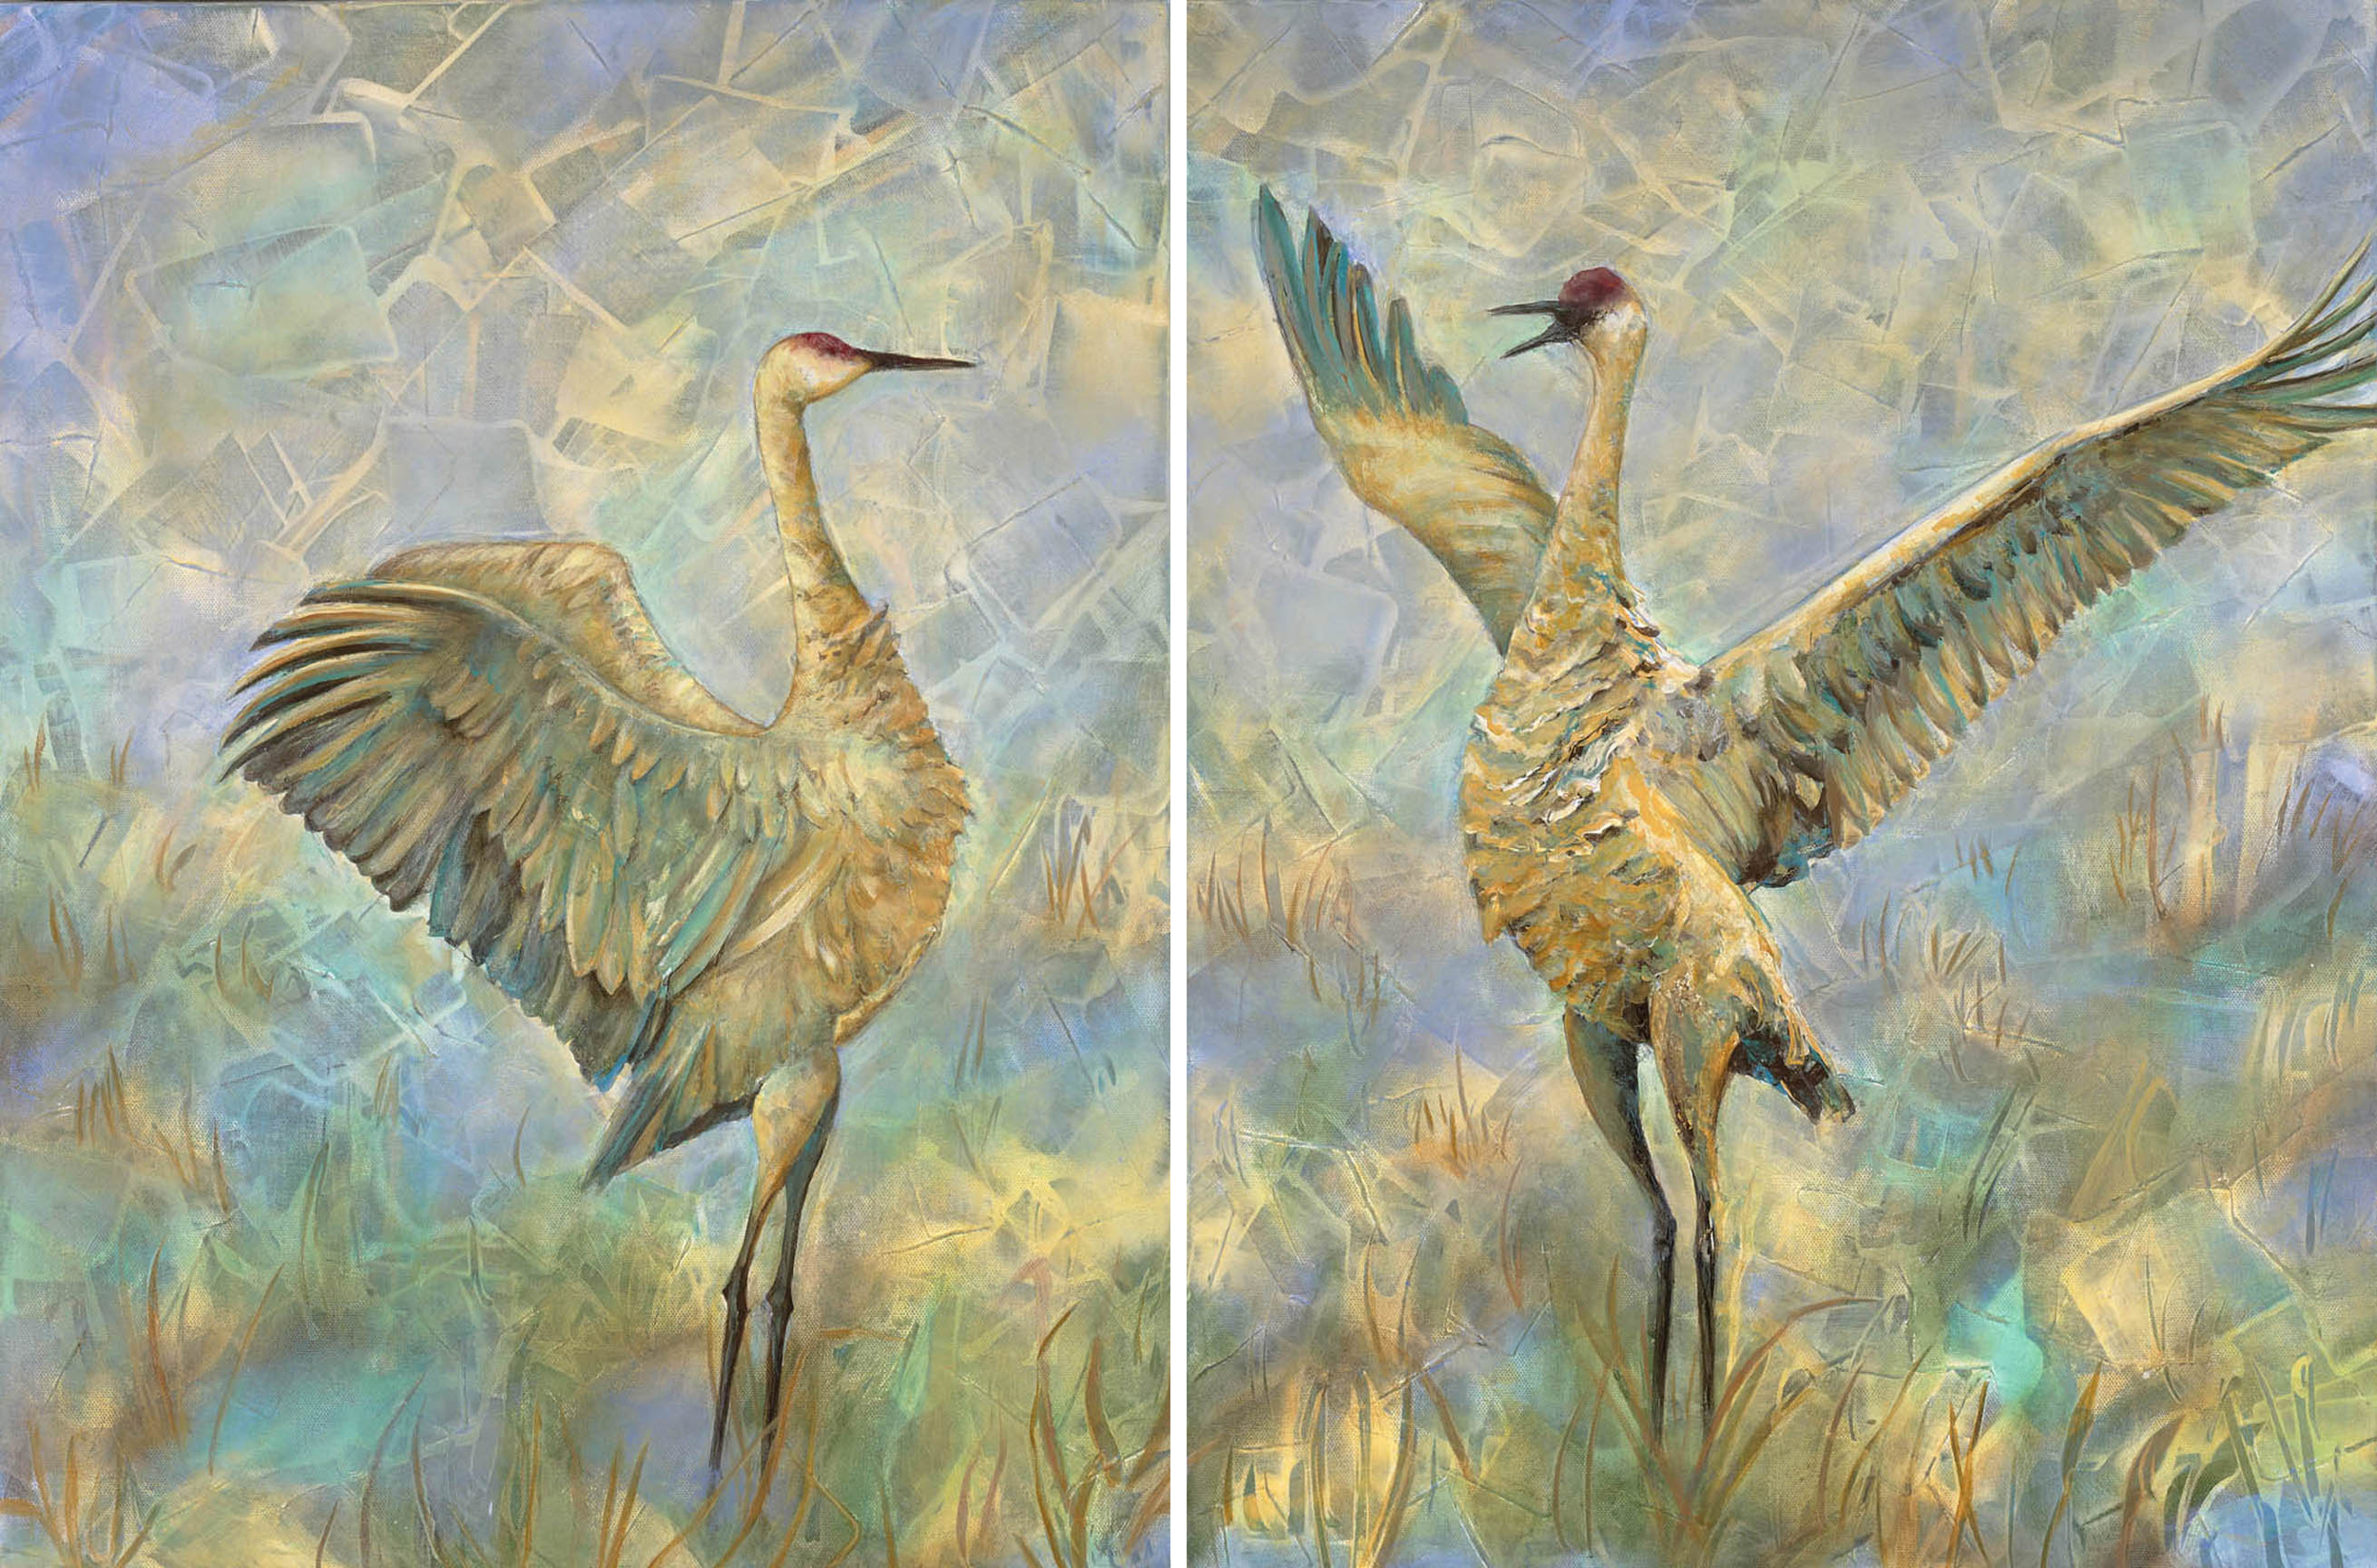 "He Said, She Said 18"" x 36"" Sold; Giclée prints available (separately or as diptych)"